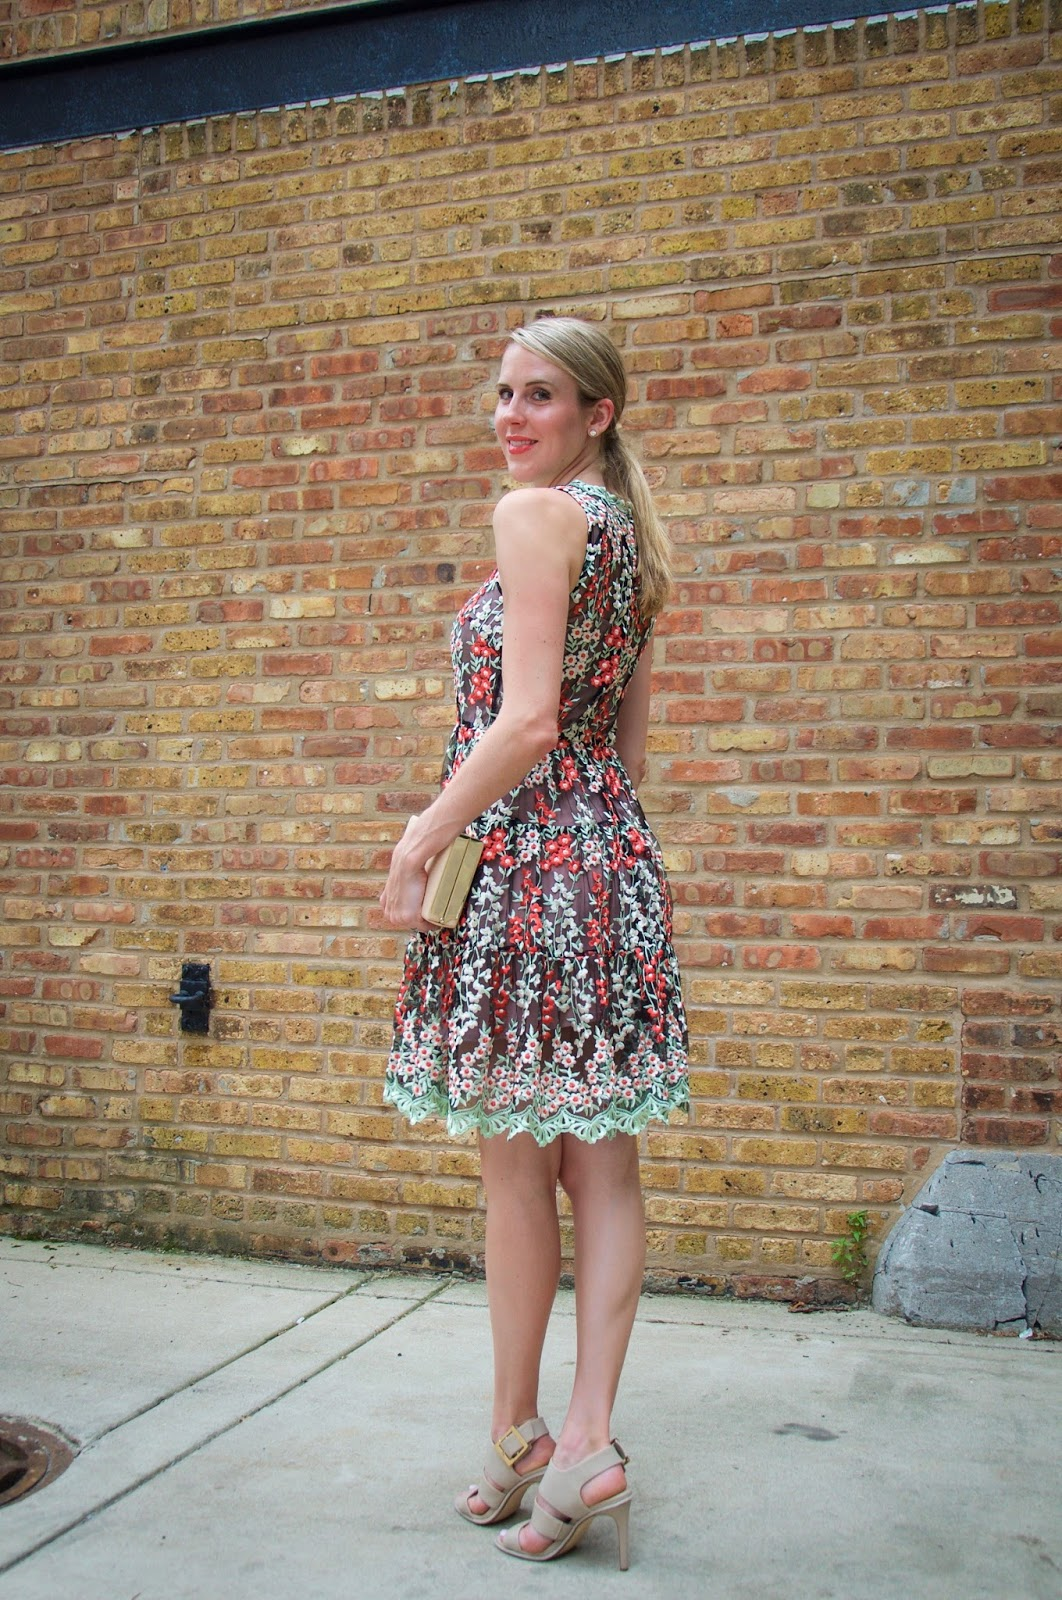 Fairly Yours Chicago Based Life And Style Blog Lily Of